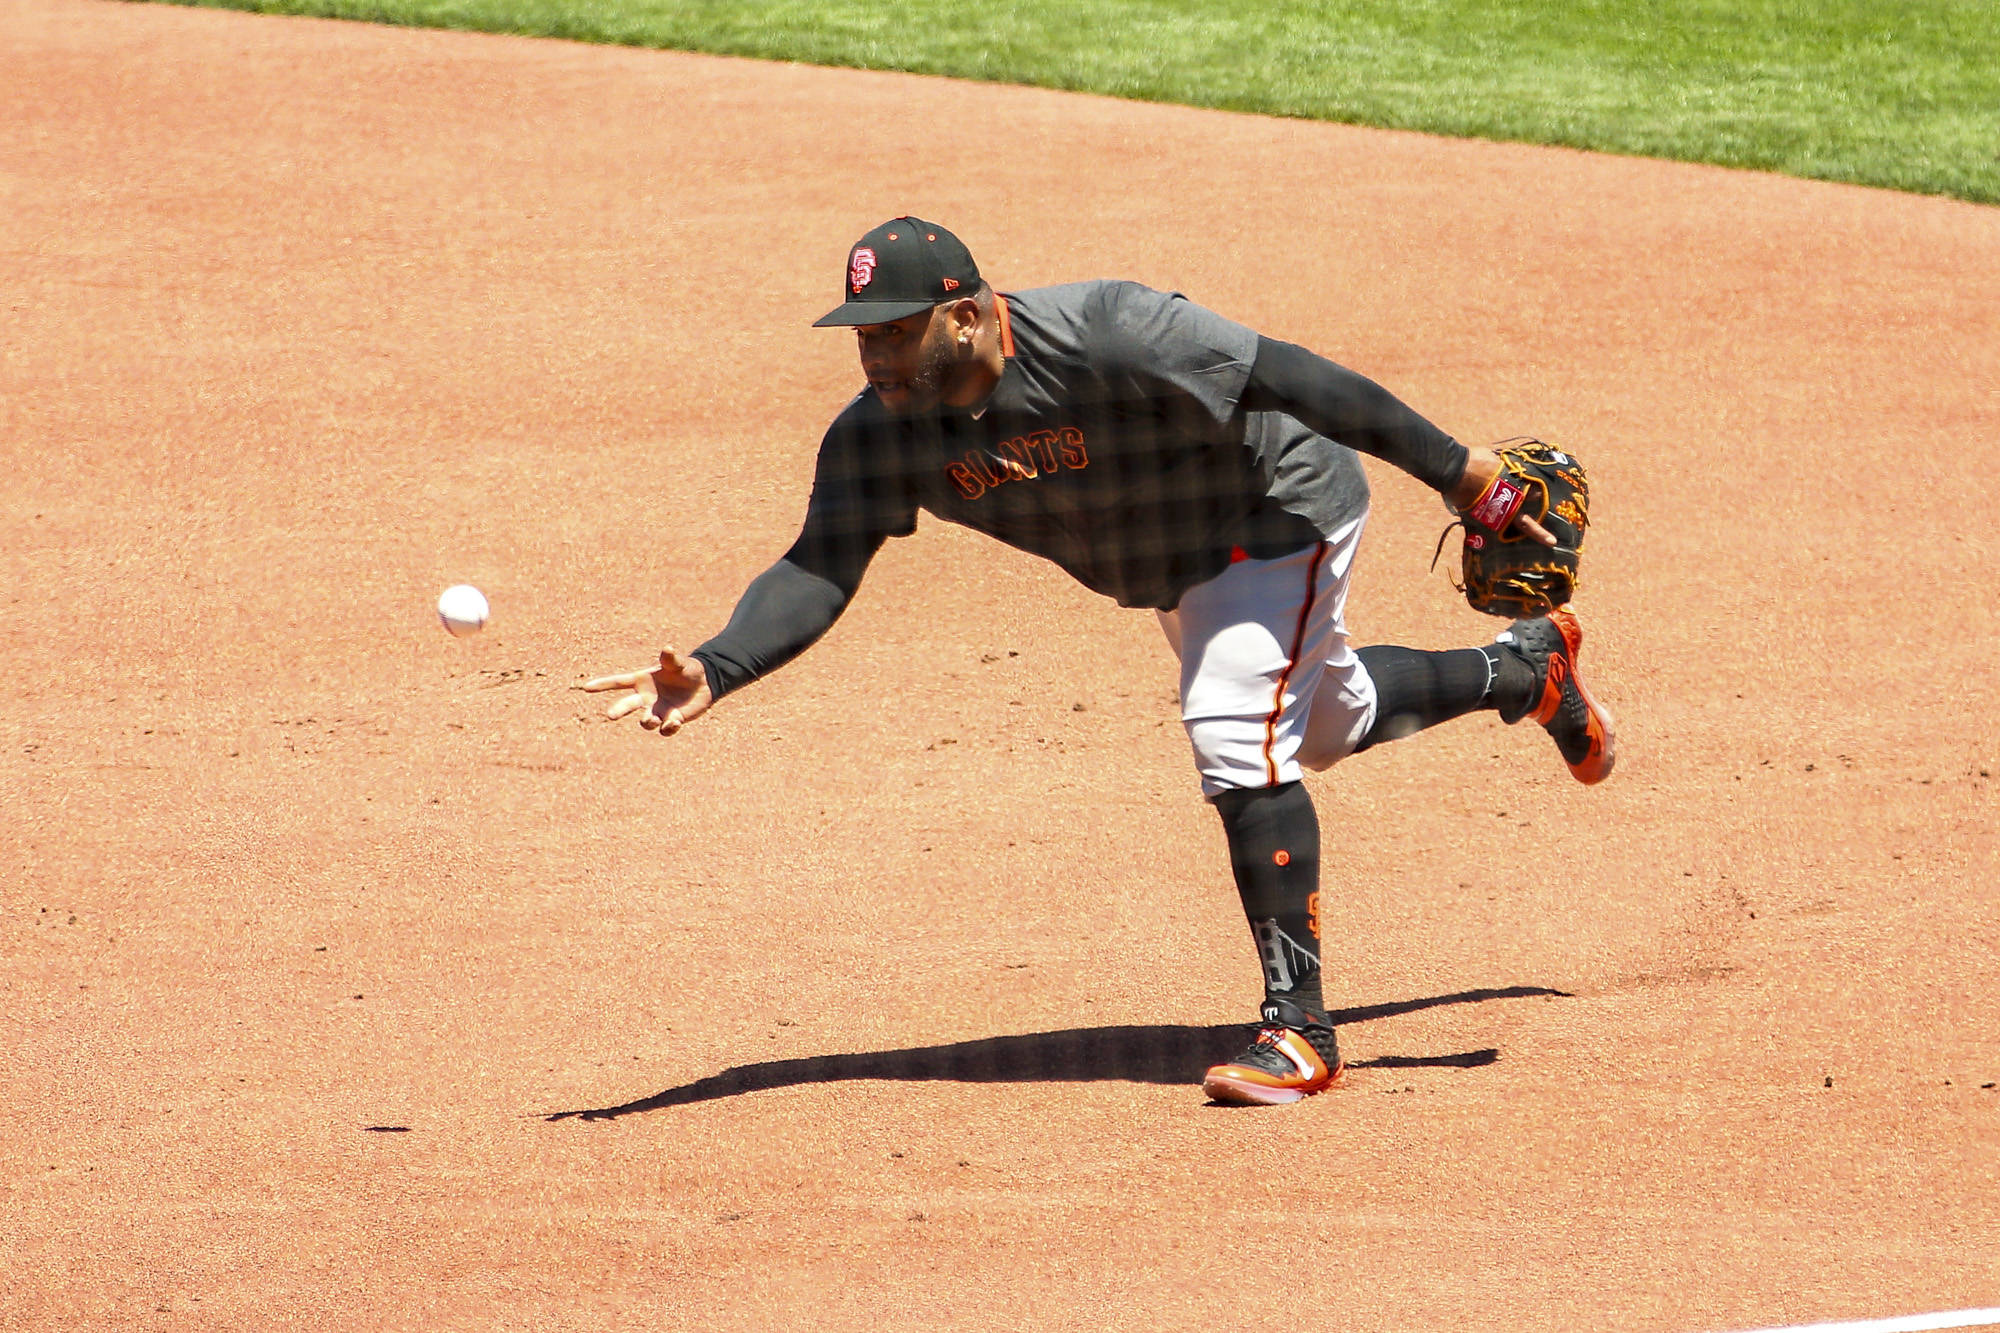 San Francisco Giants third baseman Pablo Sandoval fields a ground ball during drills during summer workout at Oracle Park on July 4, 2020. (Chris Victorio/Special to S.F. Examiner)